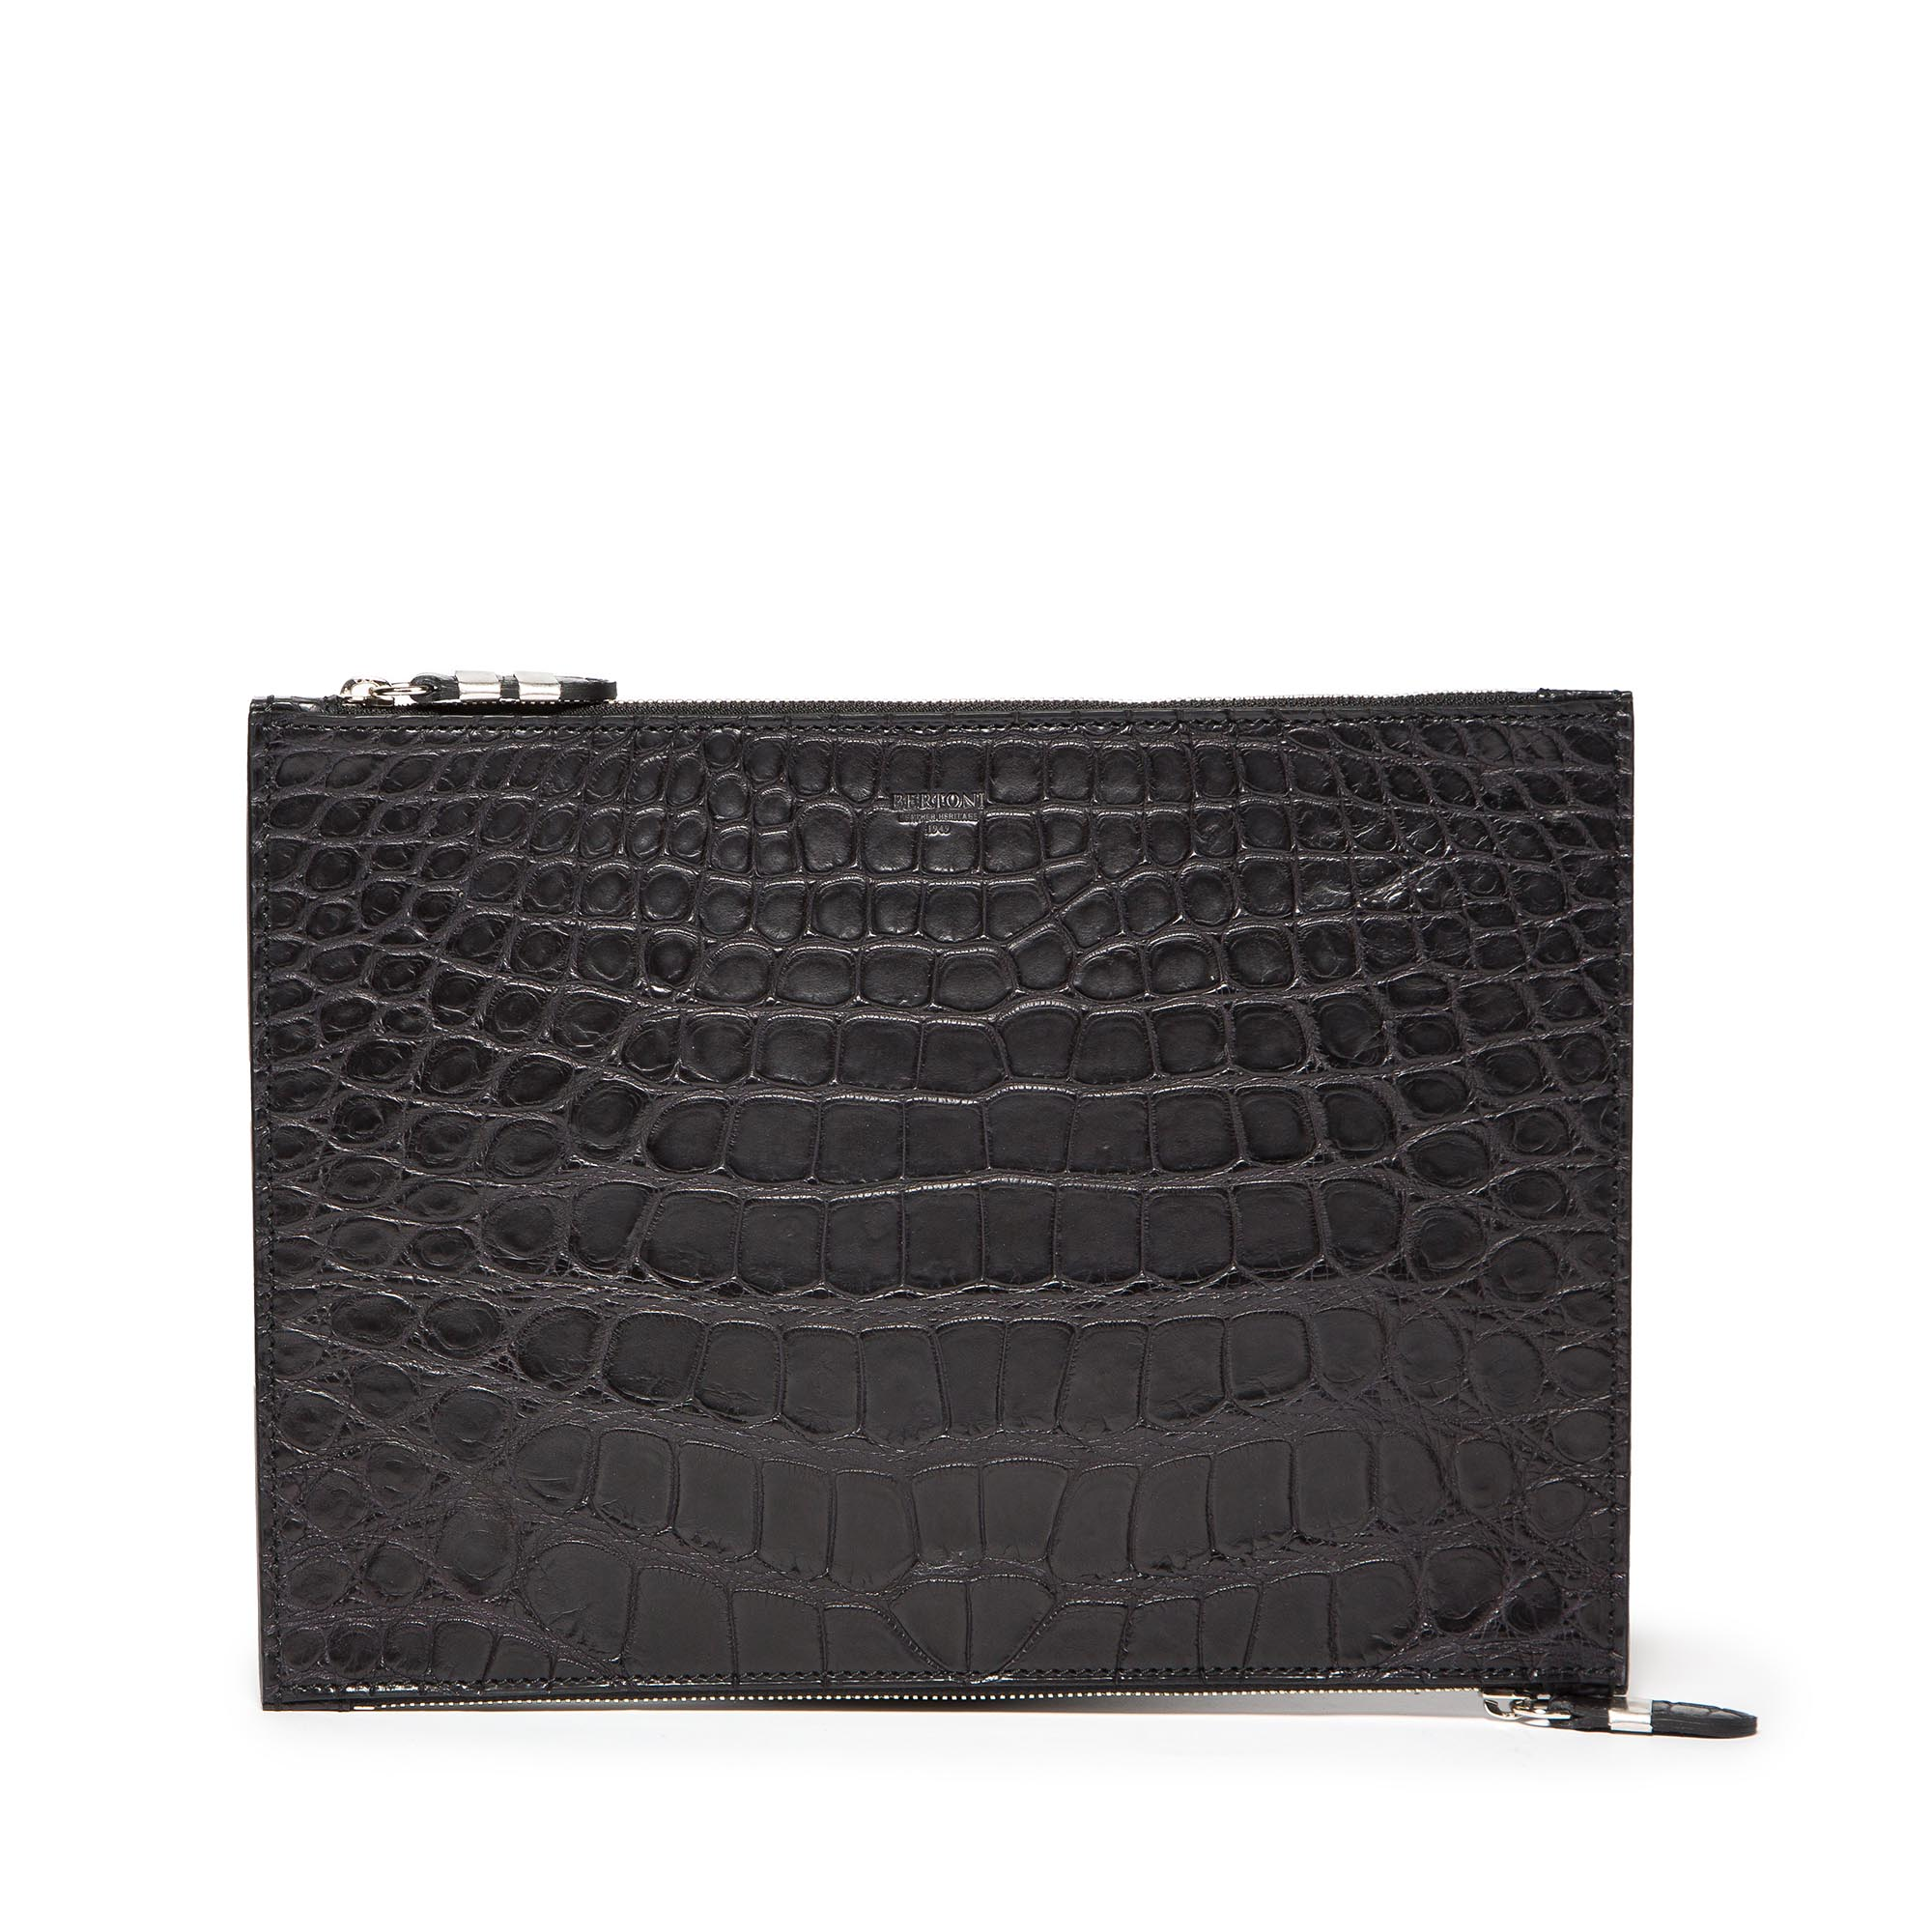 Double-Zipped-Pouch-black-alligator-bag-Bertoni-1949